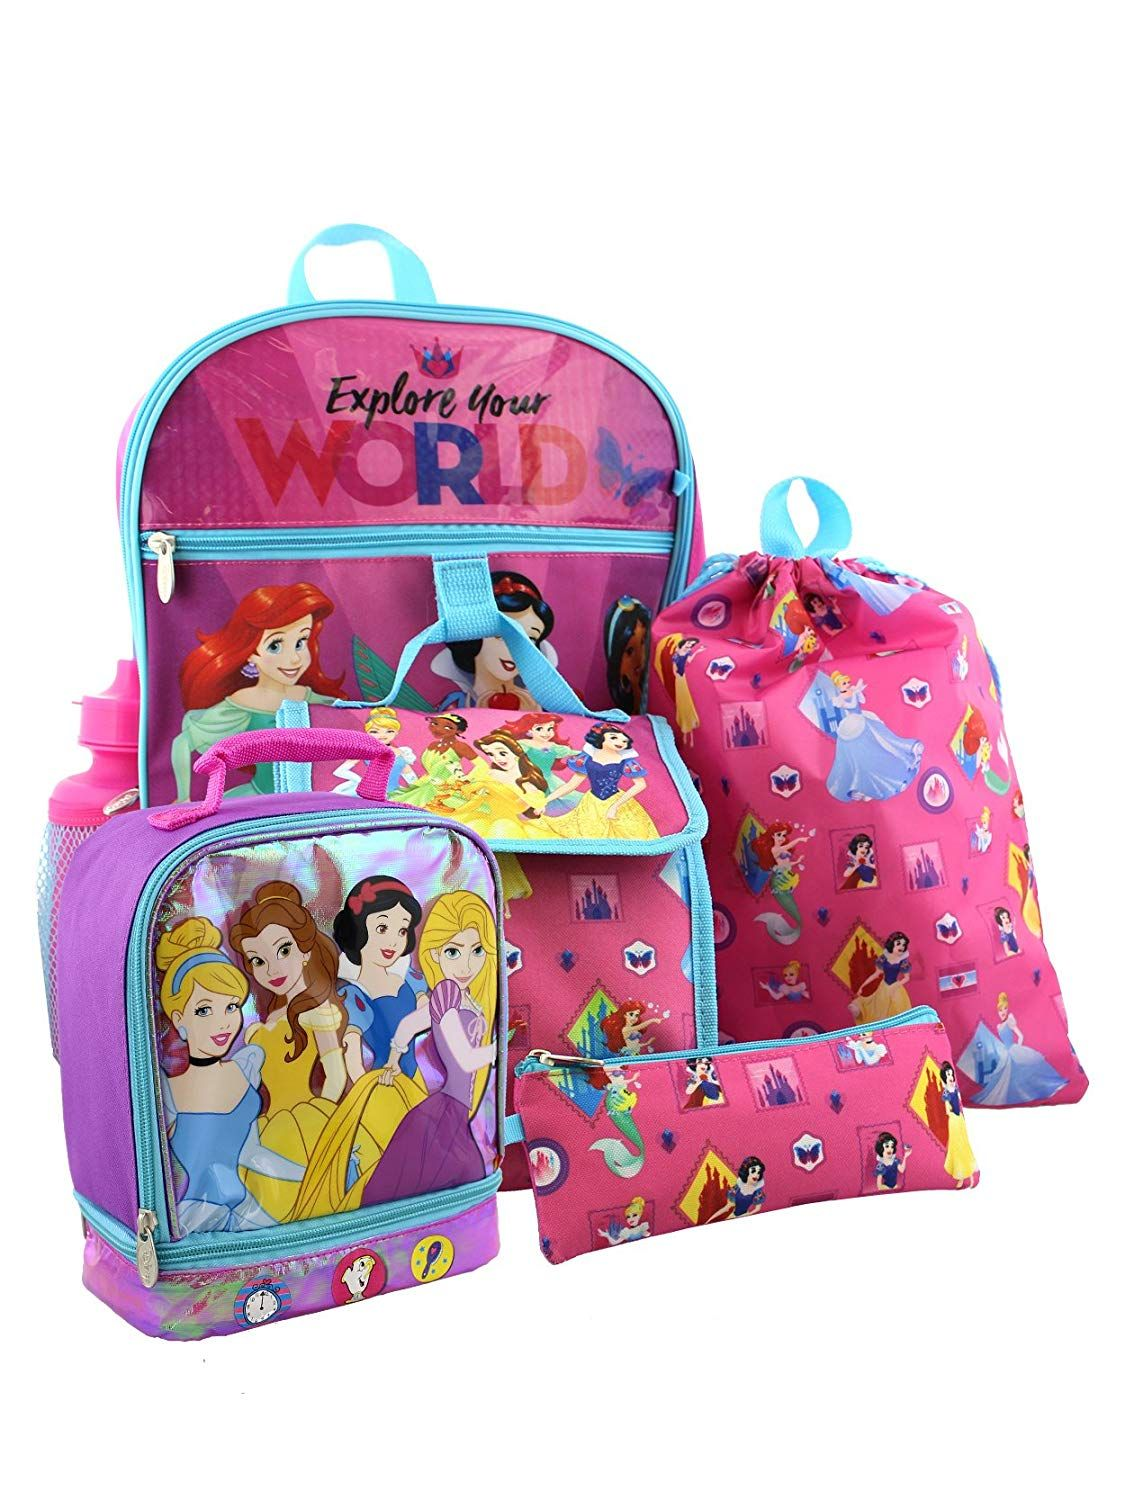 ec21c0a3caad This pretty Princess school set features your favorite Disney ...